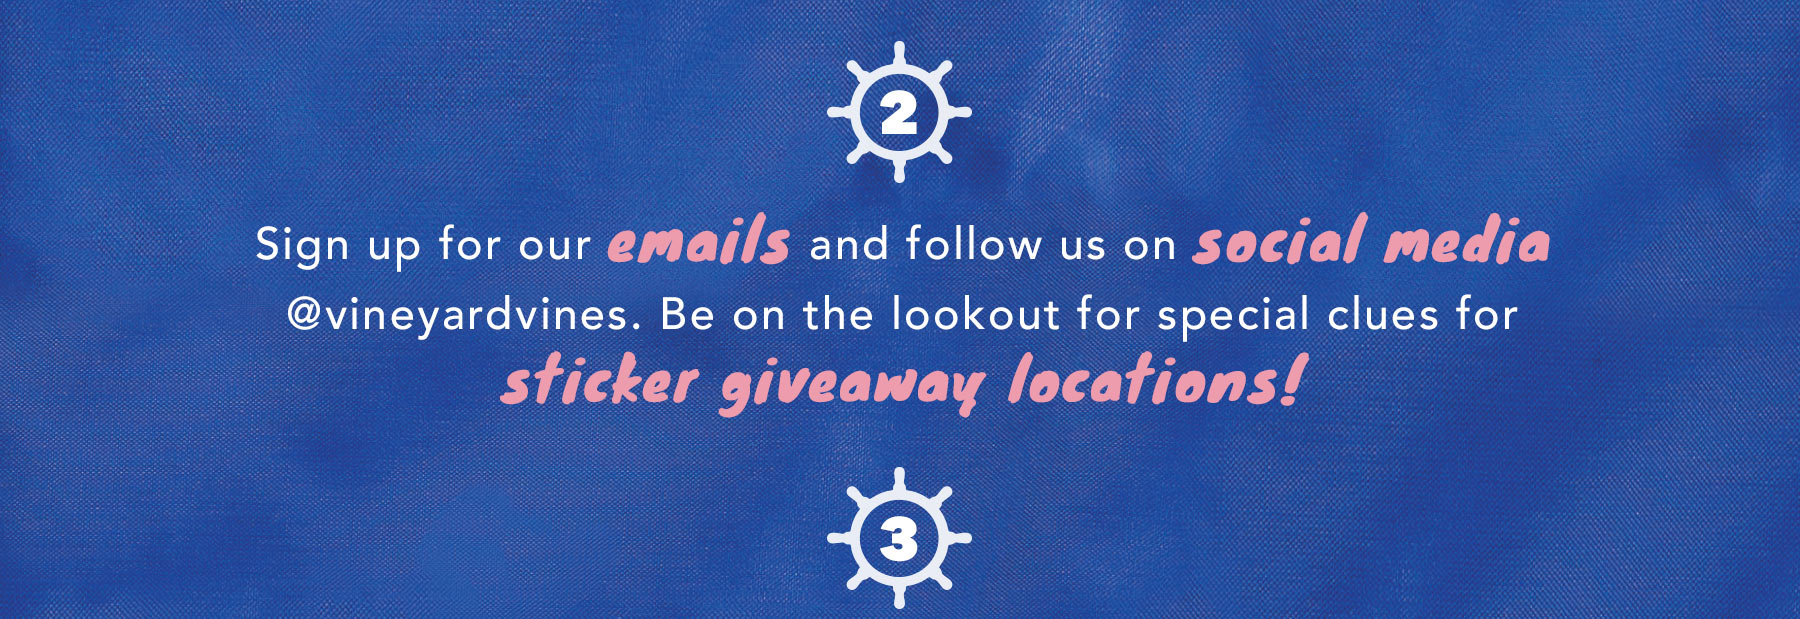 Sign up for our emails and follow us on social media @vineyardvines. Be on the look out for special clues for sticker giveaway locations!